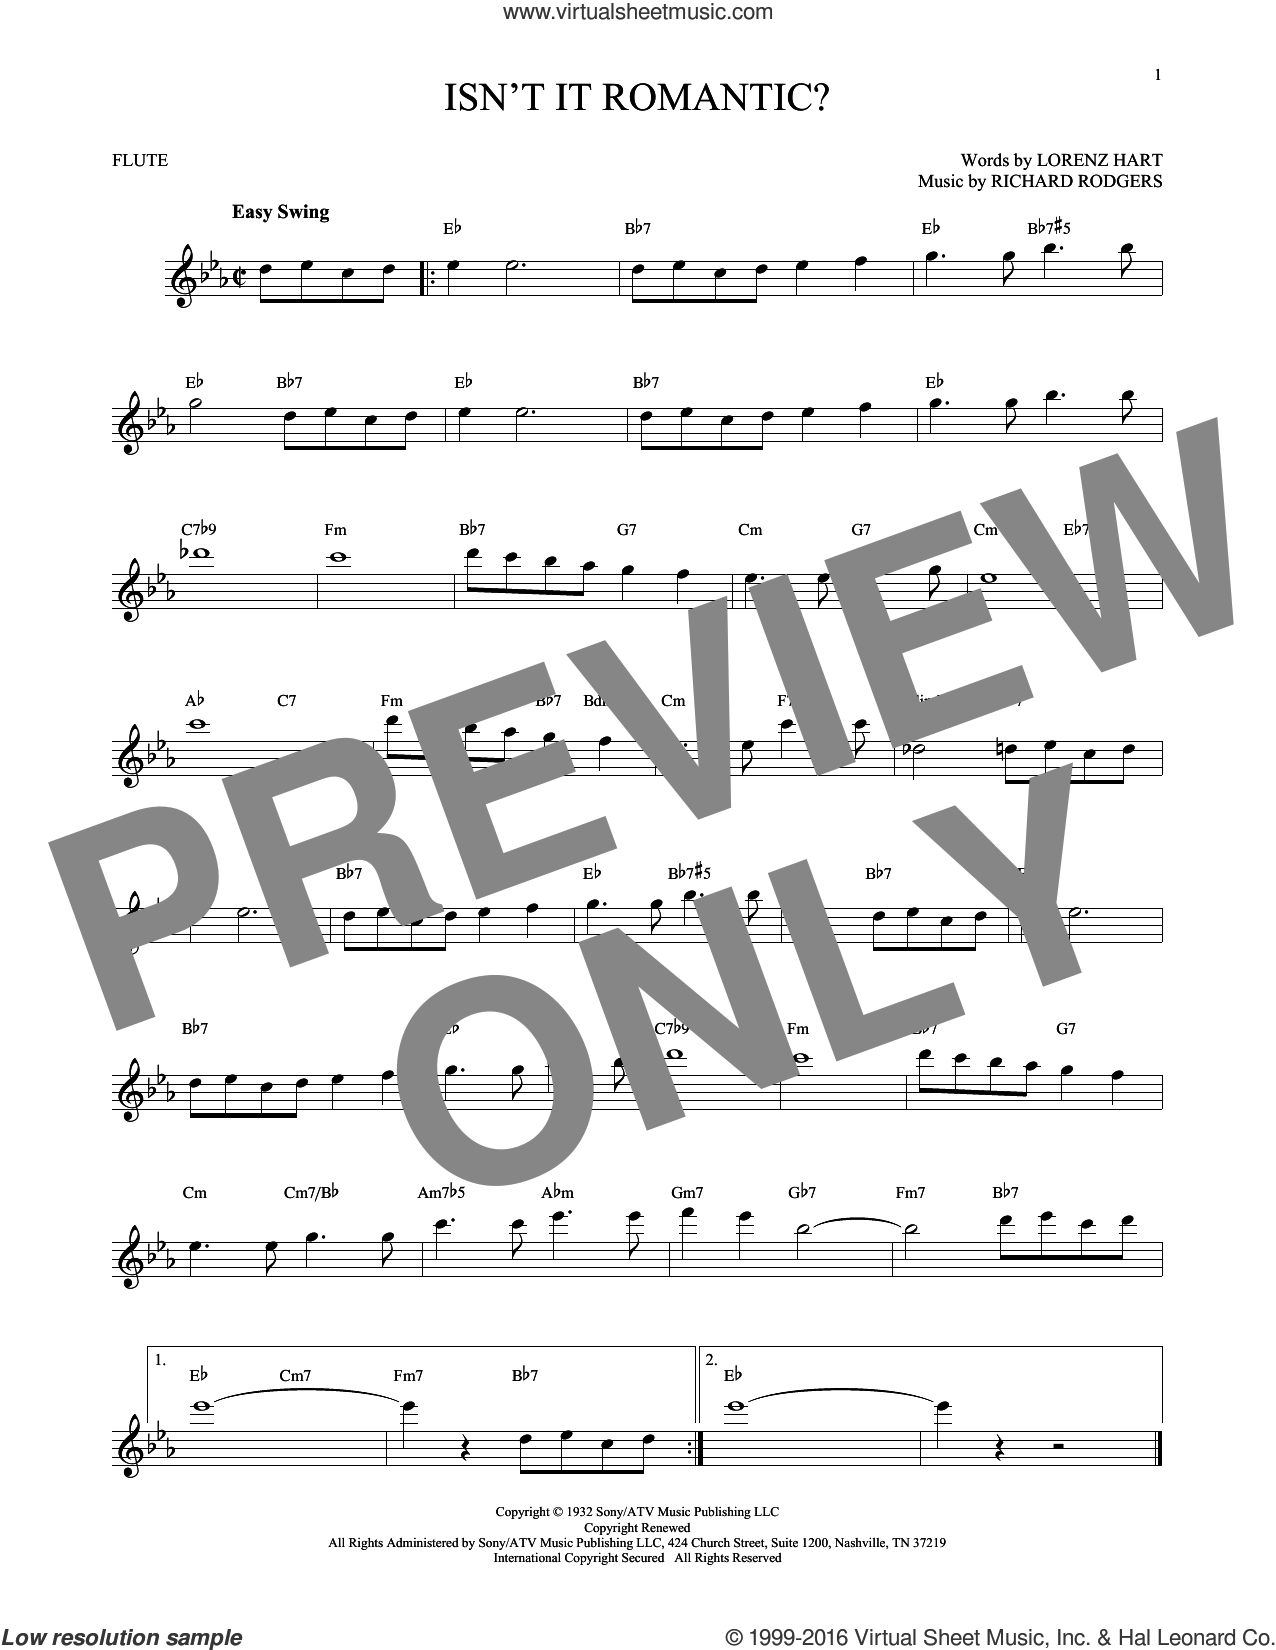 Isn't It Romantic? sheet music for flute solo by Rodgers & Hart, Shirley Horn, Lorenz Hart and Richard Rodgers, intermediate skill level